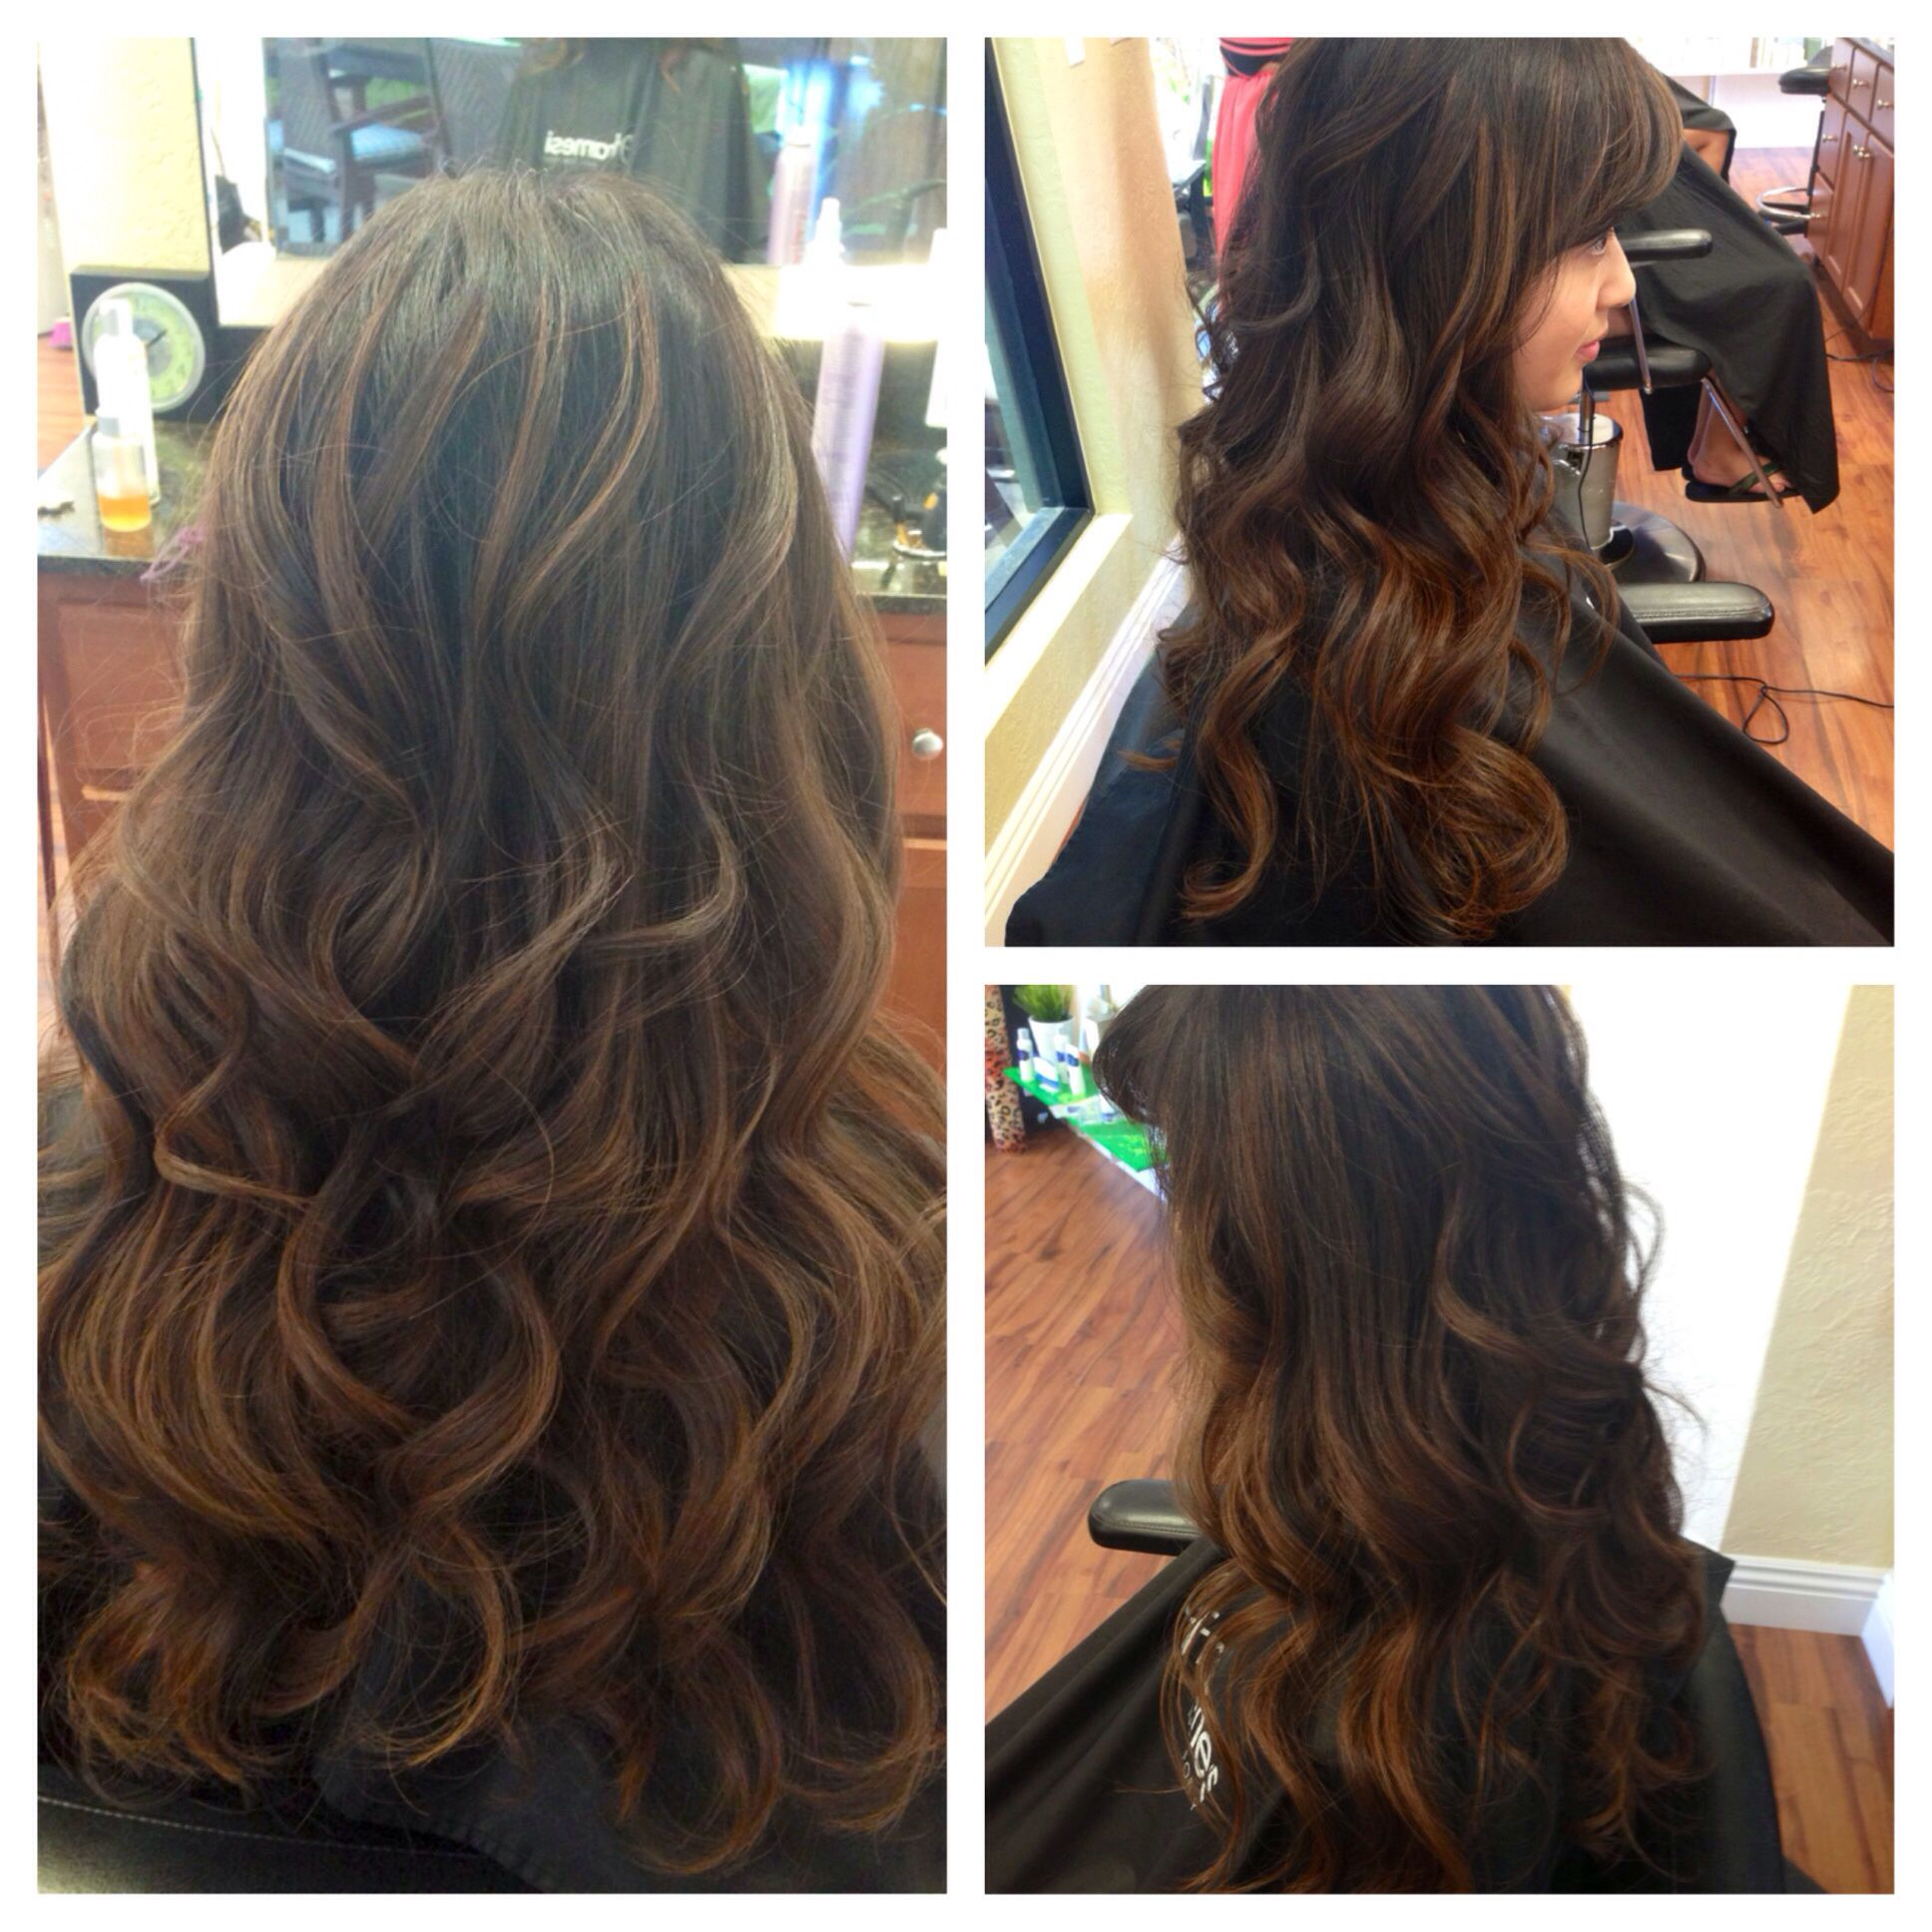 Cut color and style by Brianna @ Salon Cartier. Beautiful